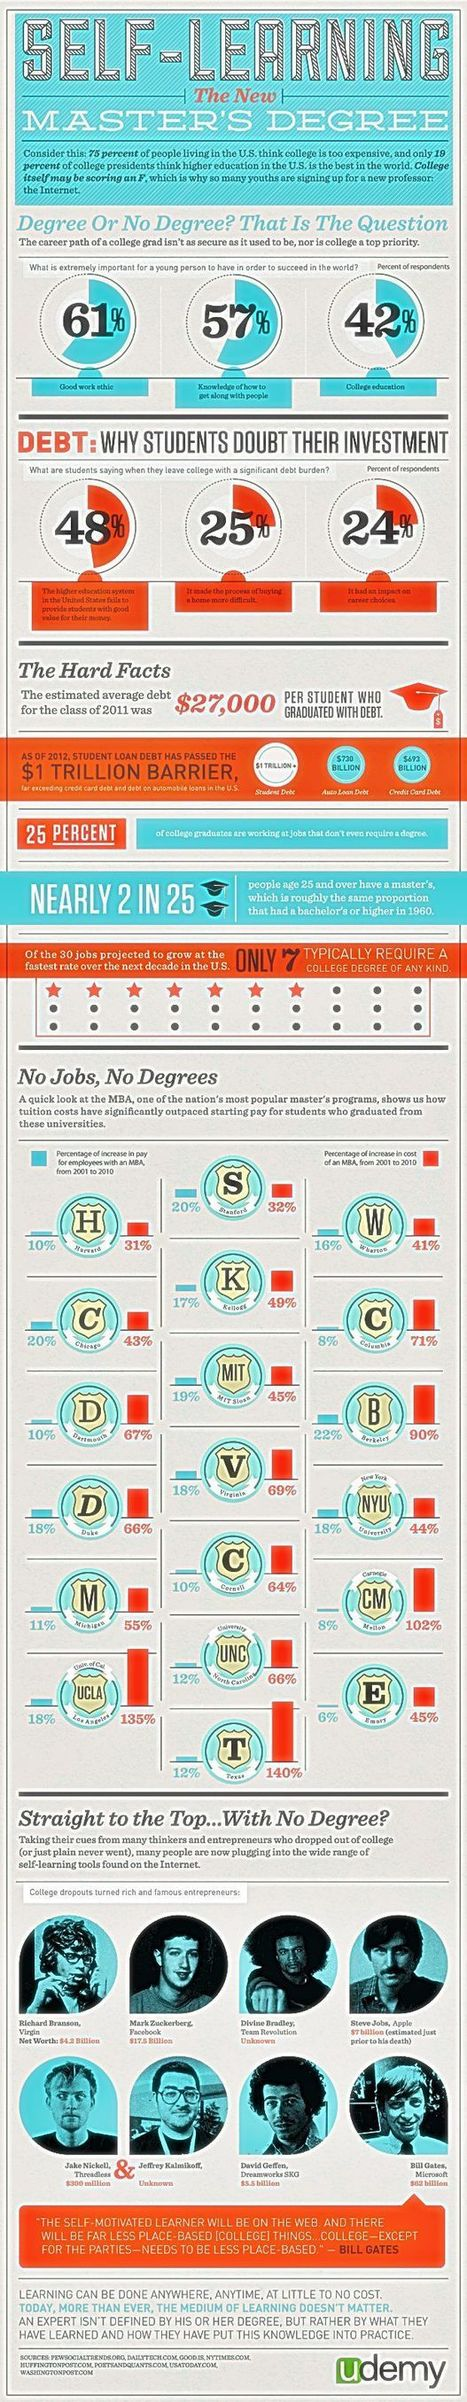 Self-Directed Learning: The New Master's Degree [Udemy Infographic] | Online Learning Marketplace | Scoop.it